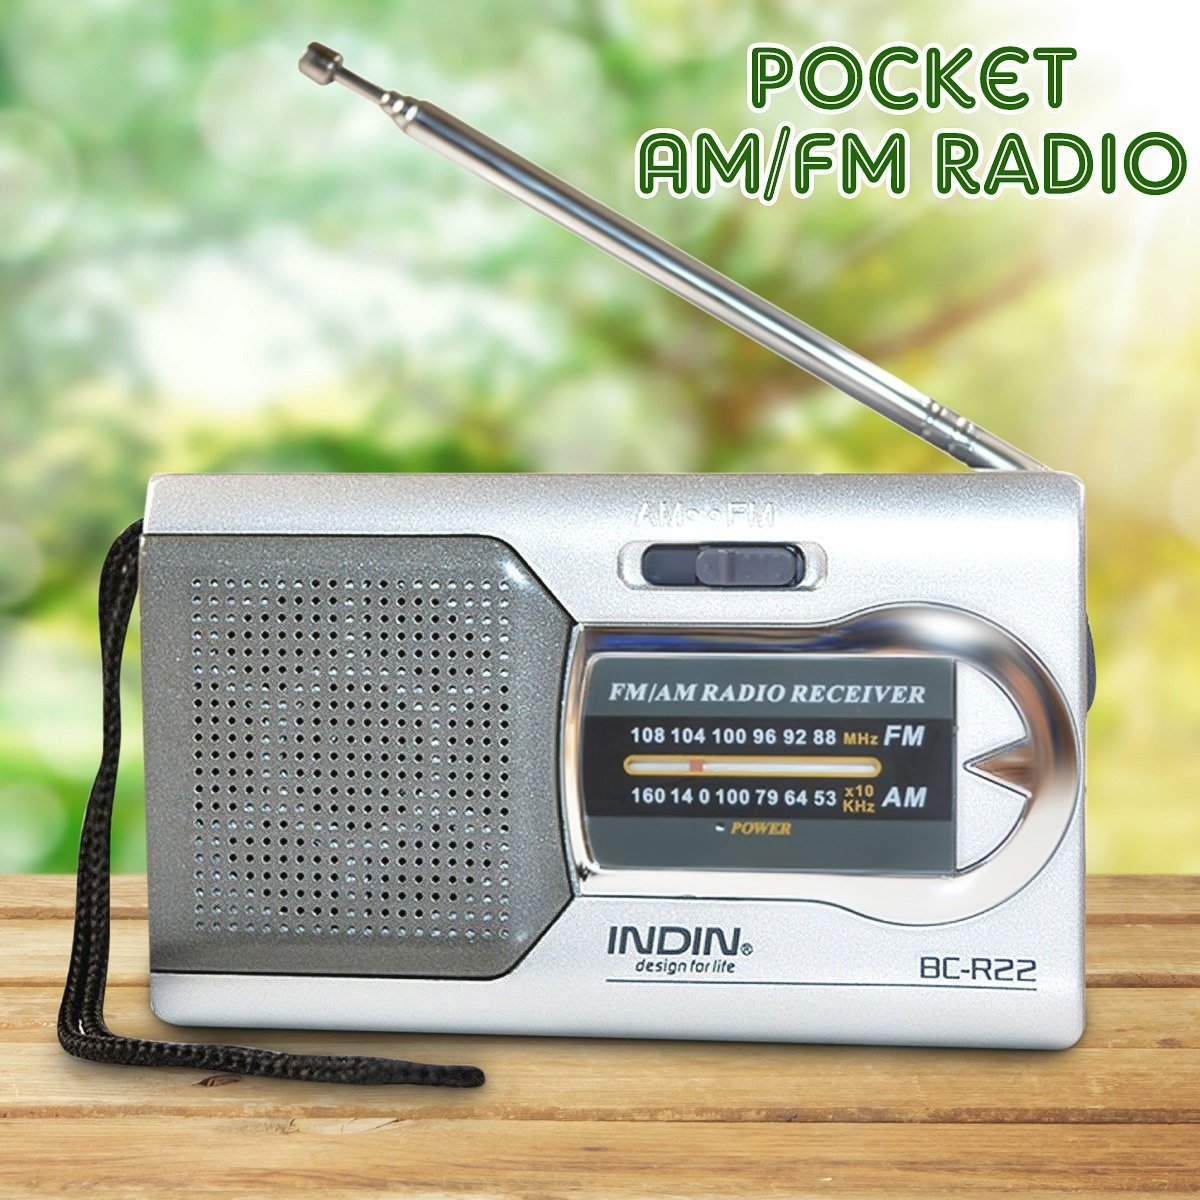 Cheap Radio Frequency Fm Find Deals On Line At Circuit 88 108 Mhz Transmitter 1w Get Quotations Hot Sale Pocket Mini Slim Am Telescopic Antenna World Receiver Range